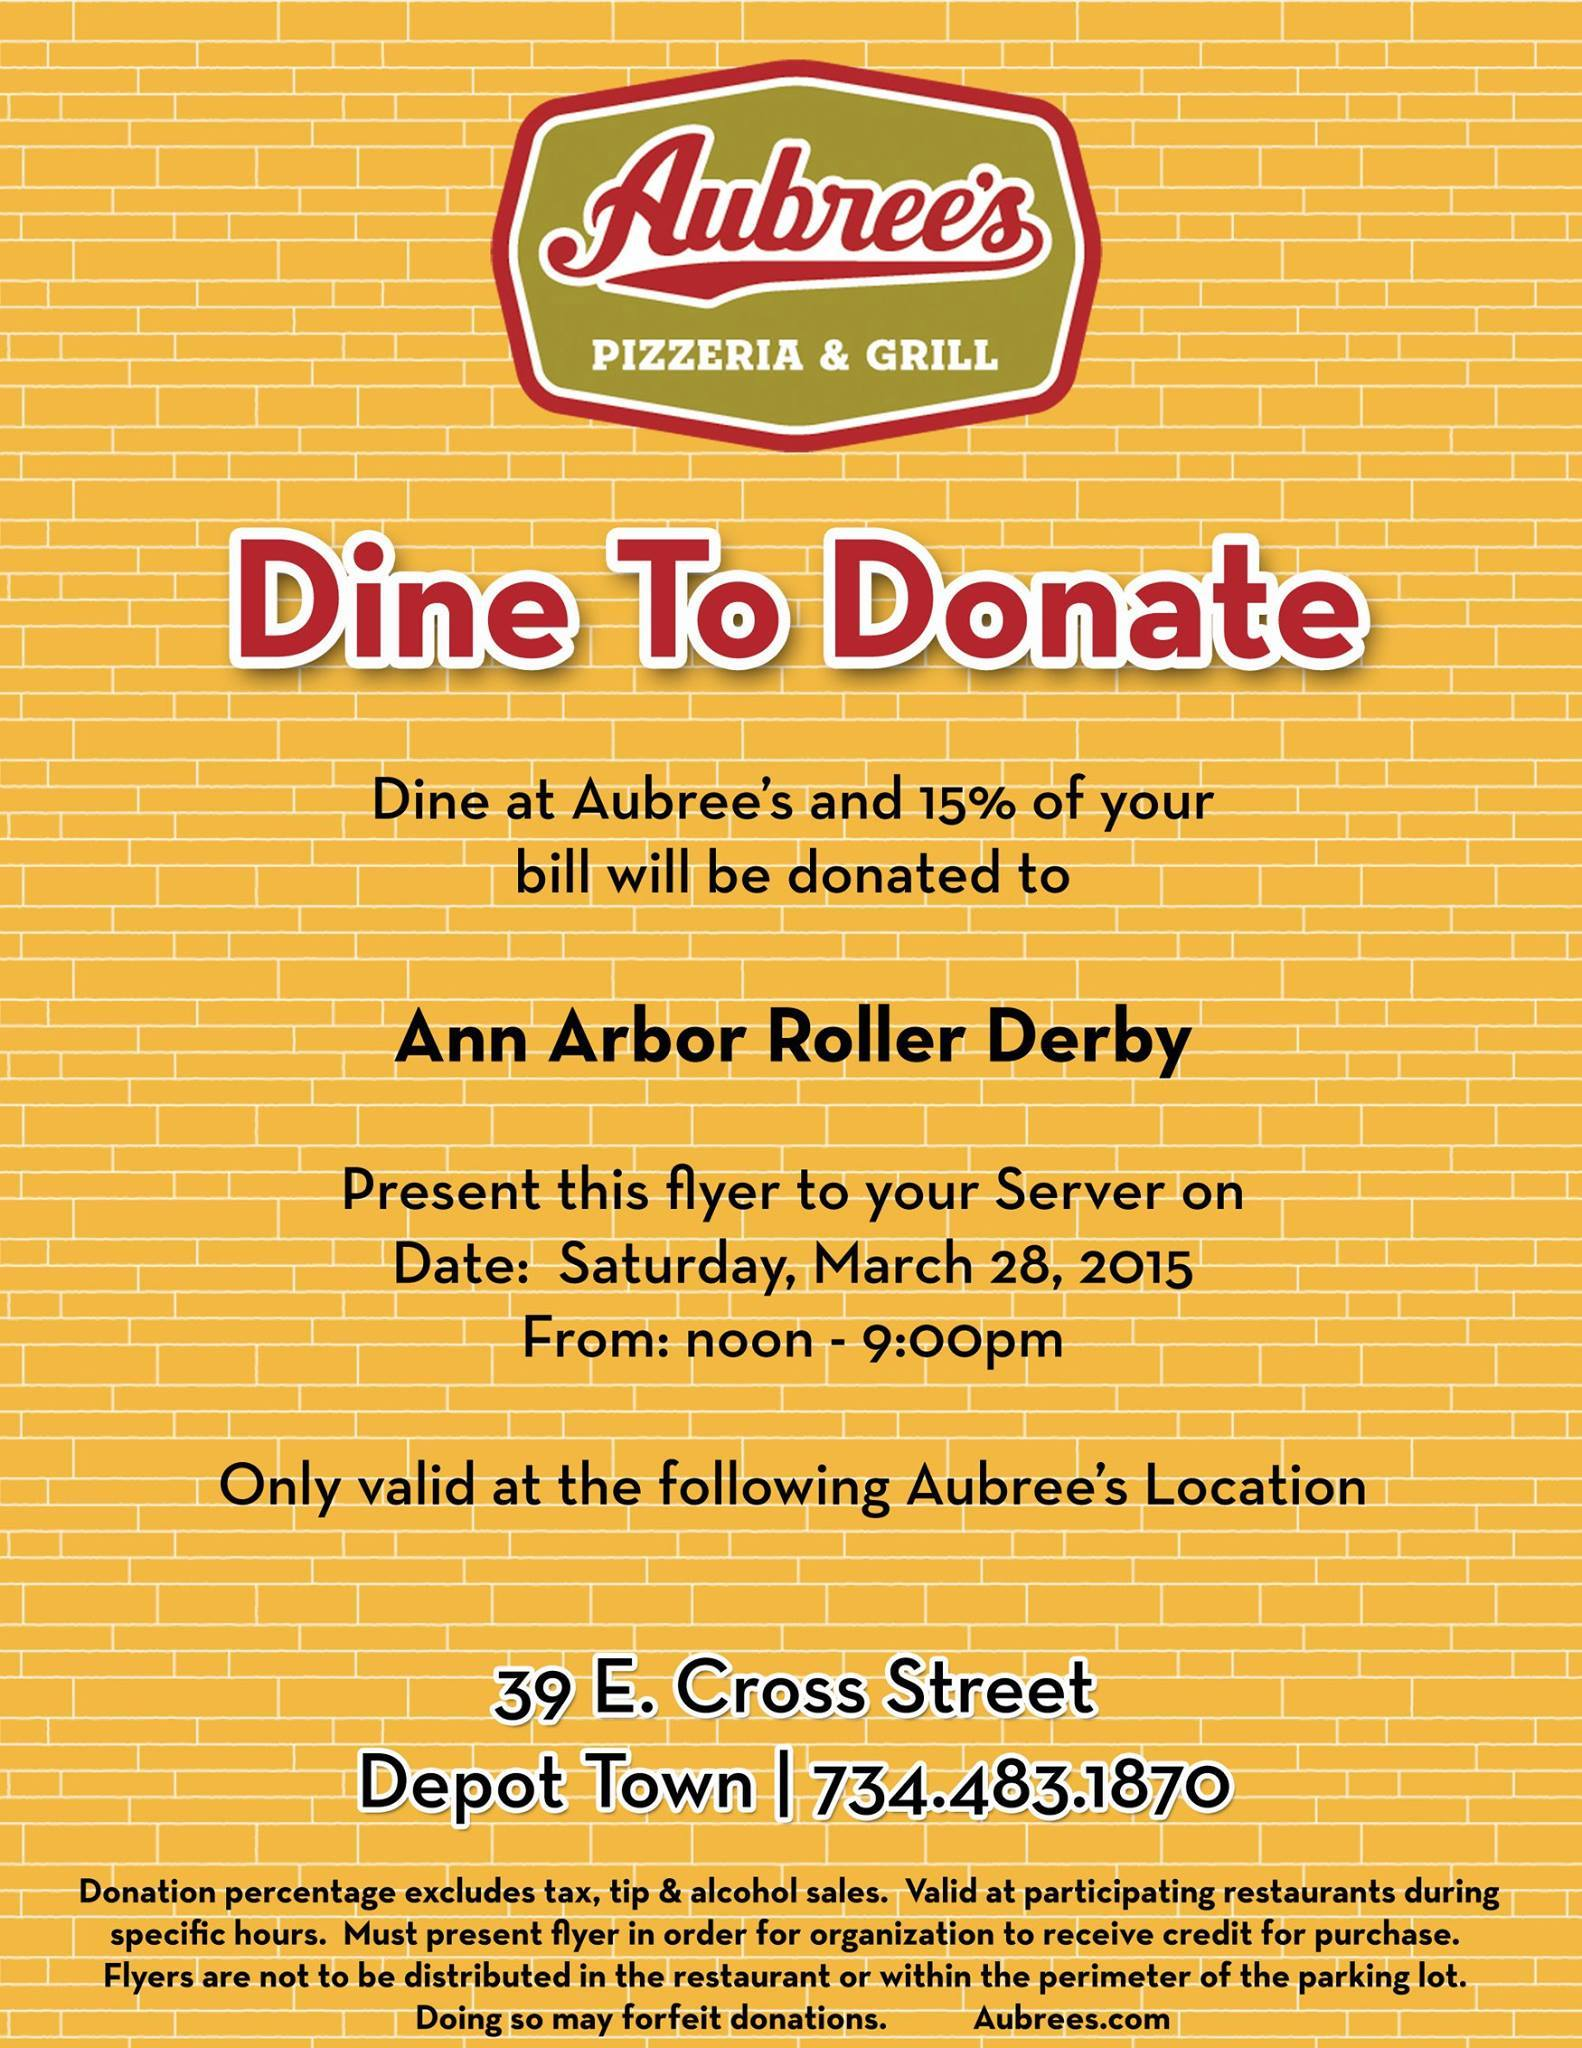 A2D2-Aubrees-Dine-To-Donate.jpg